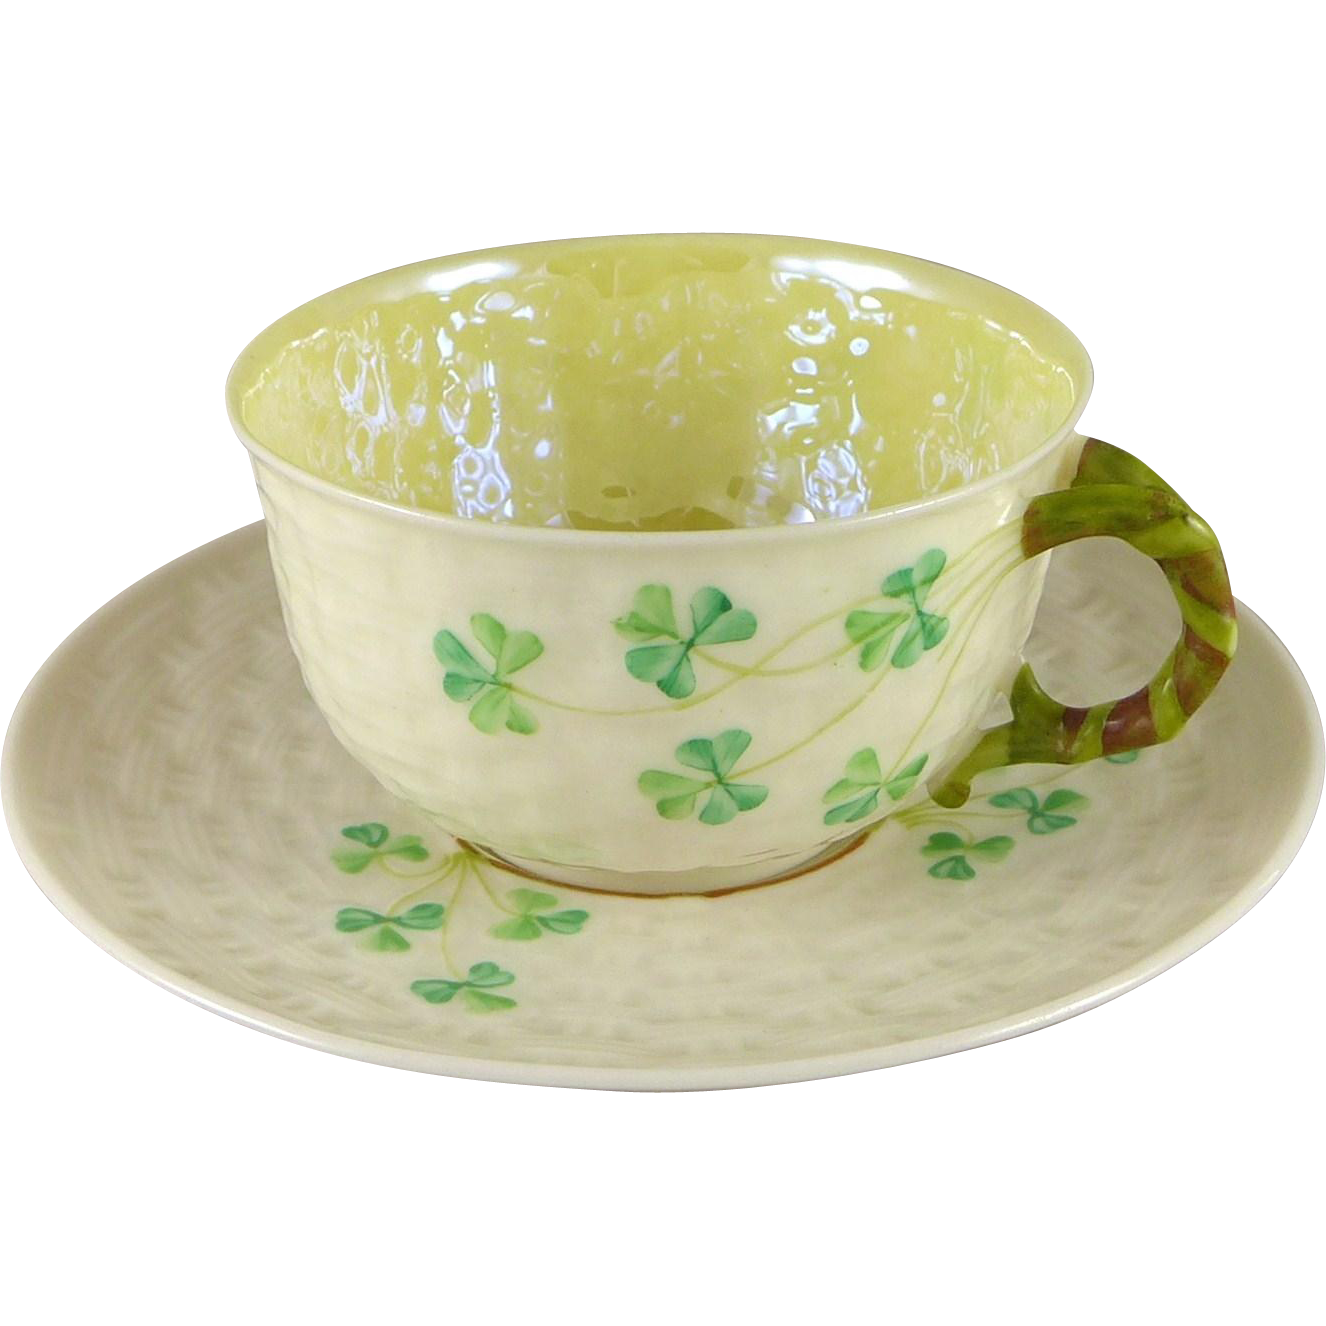 Vintage Belleek Shamrock Tea Cup Saucer Set, 1st Green Mark